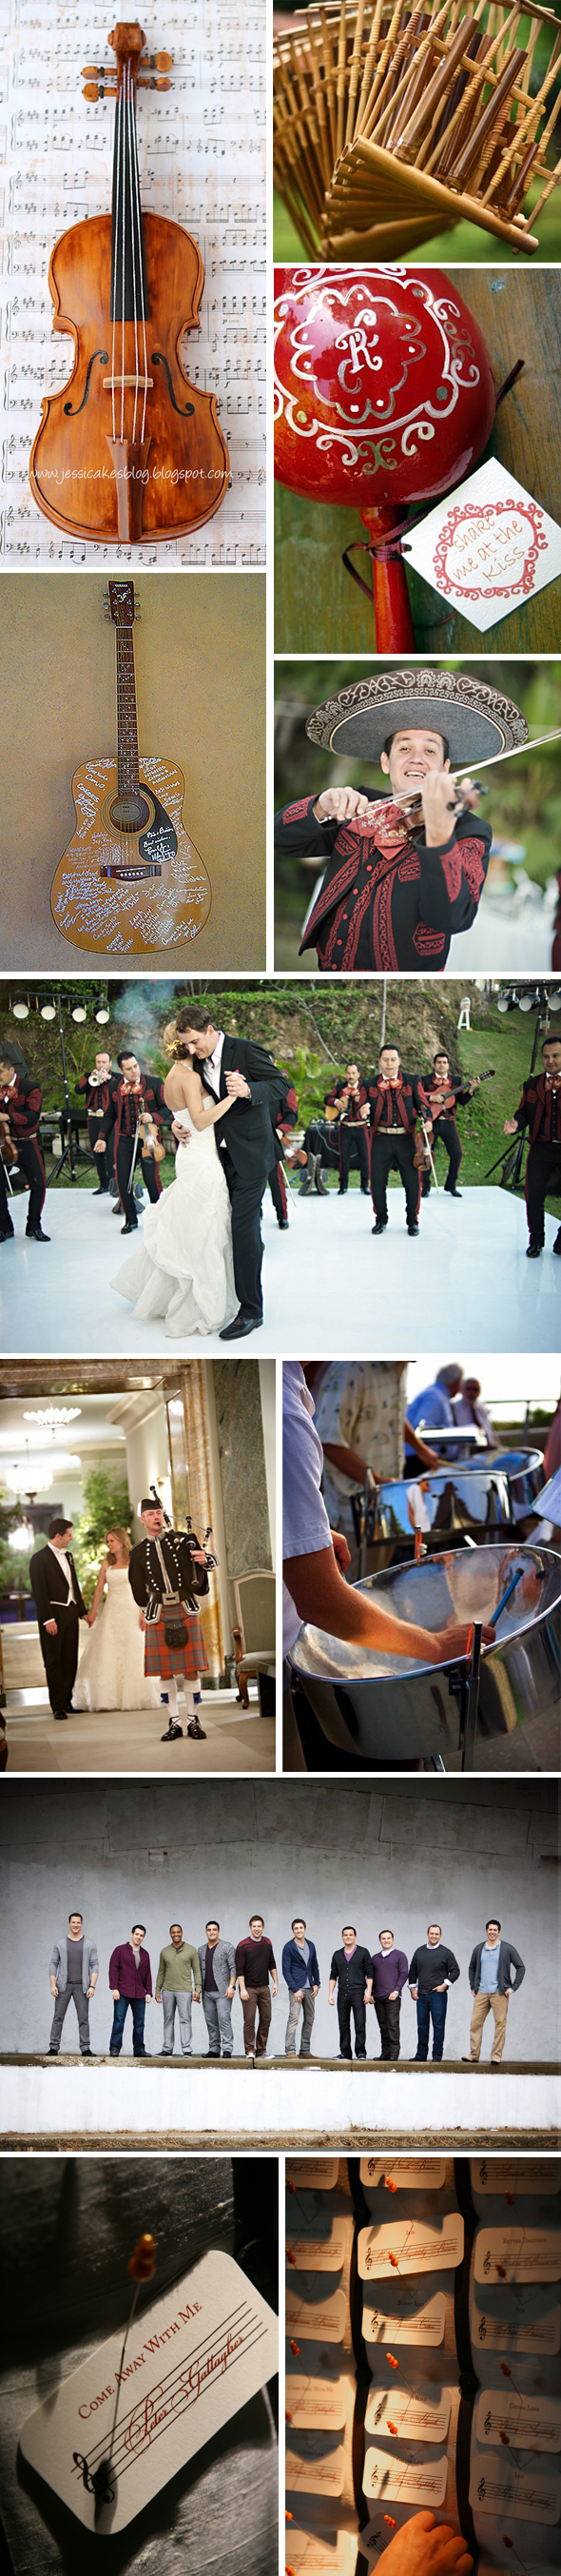 destination wedding music Infusing Music into Your Destination Wedding